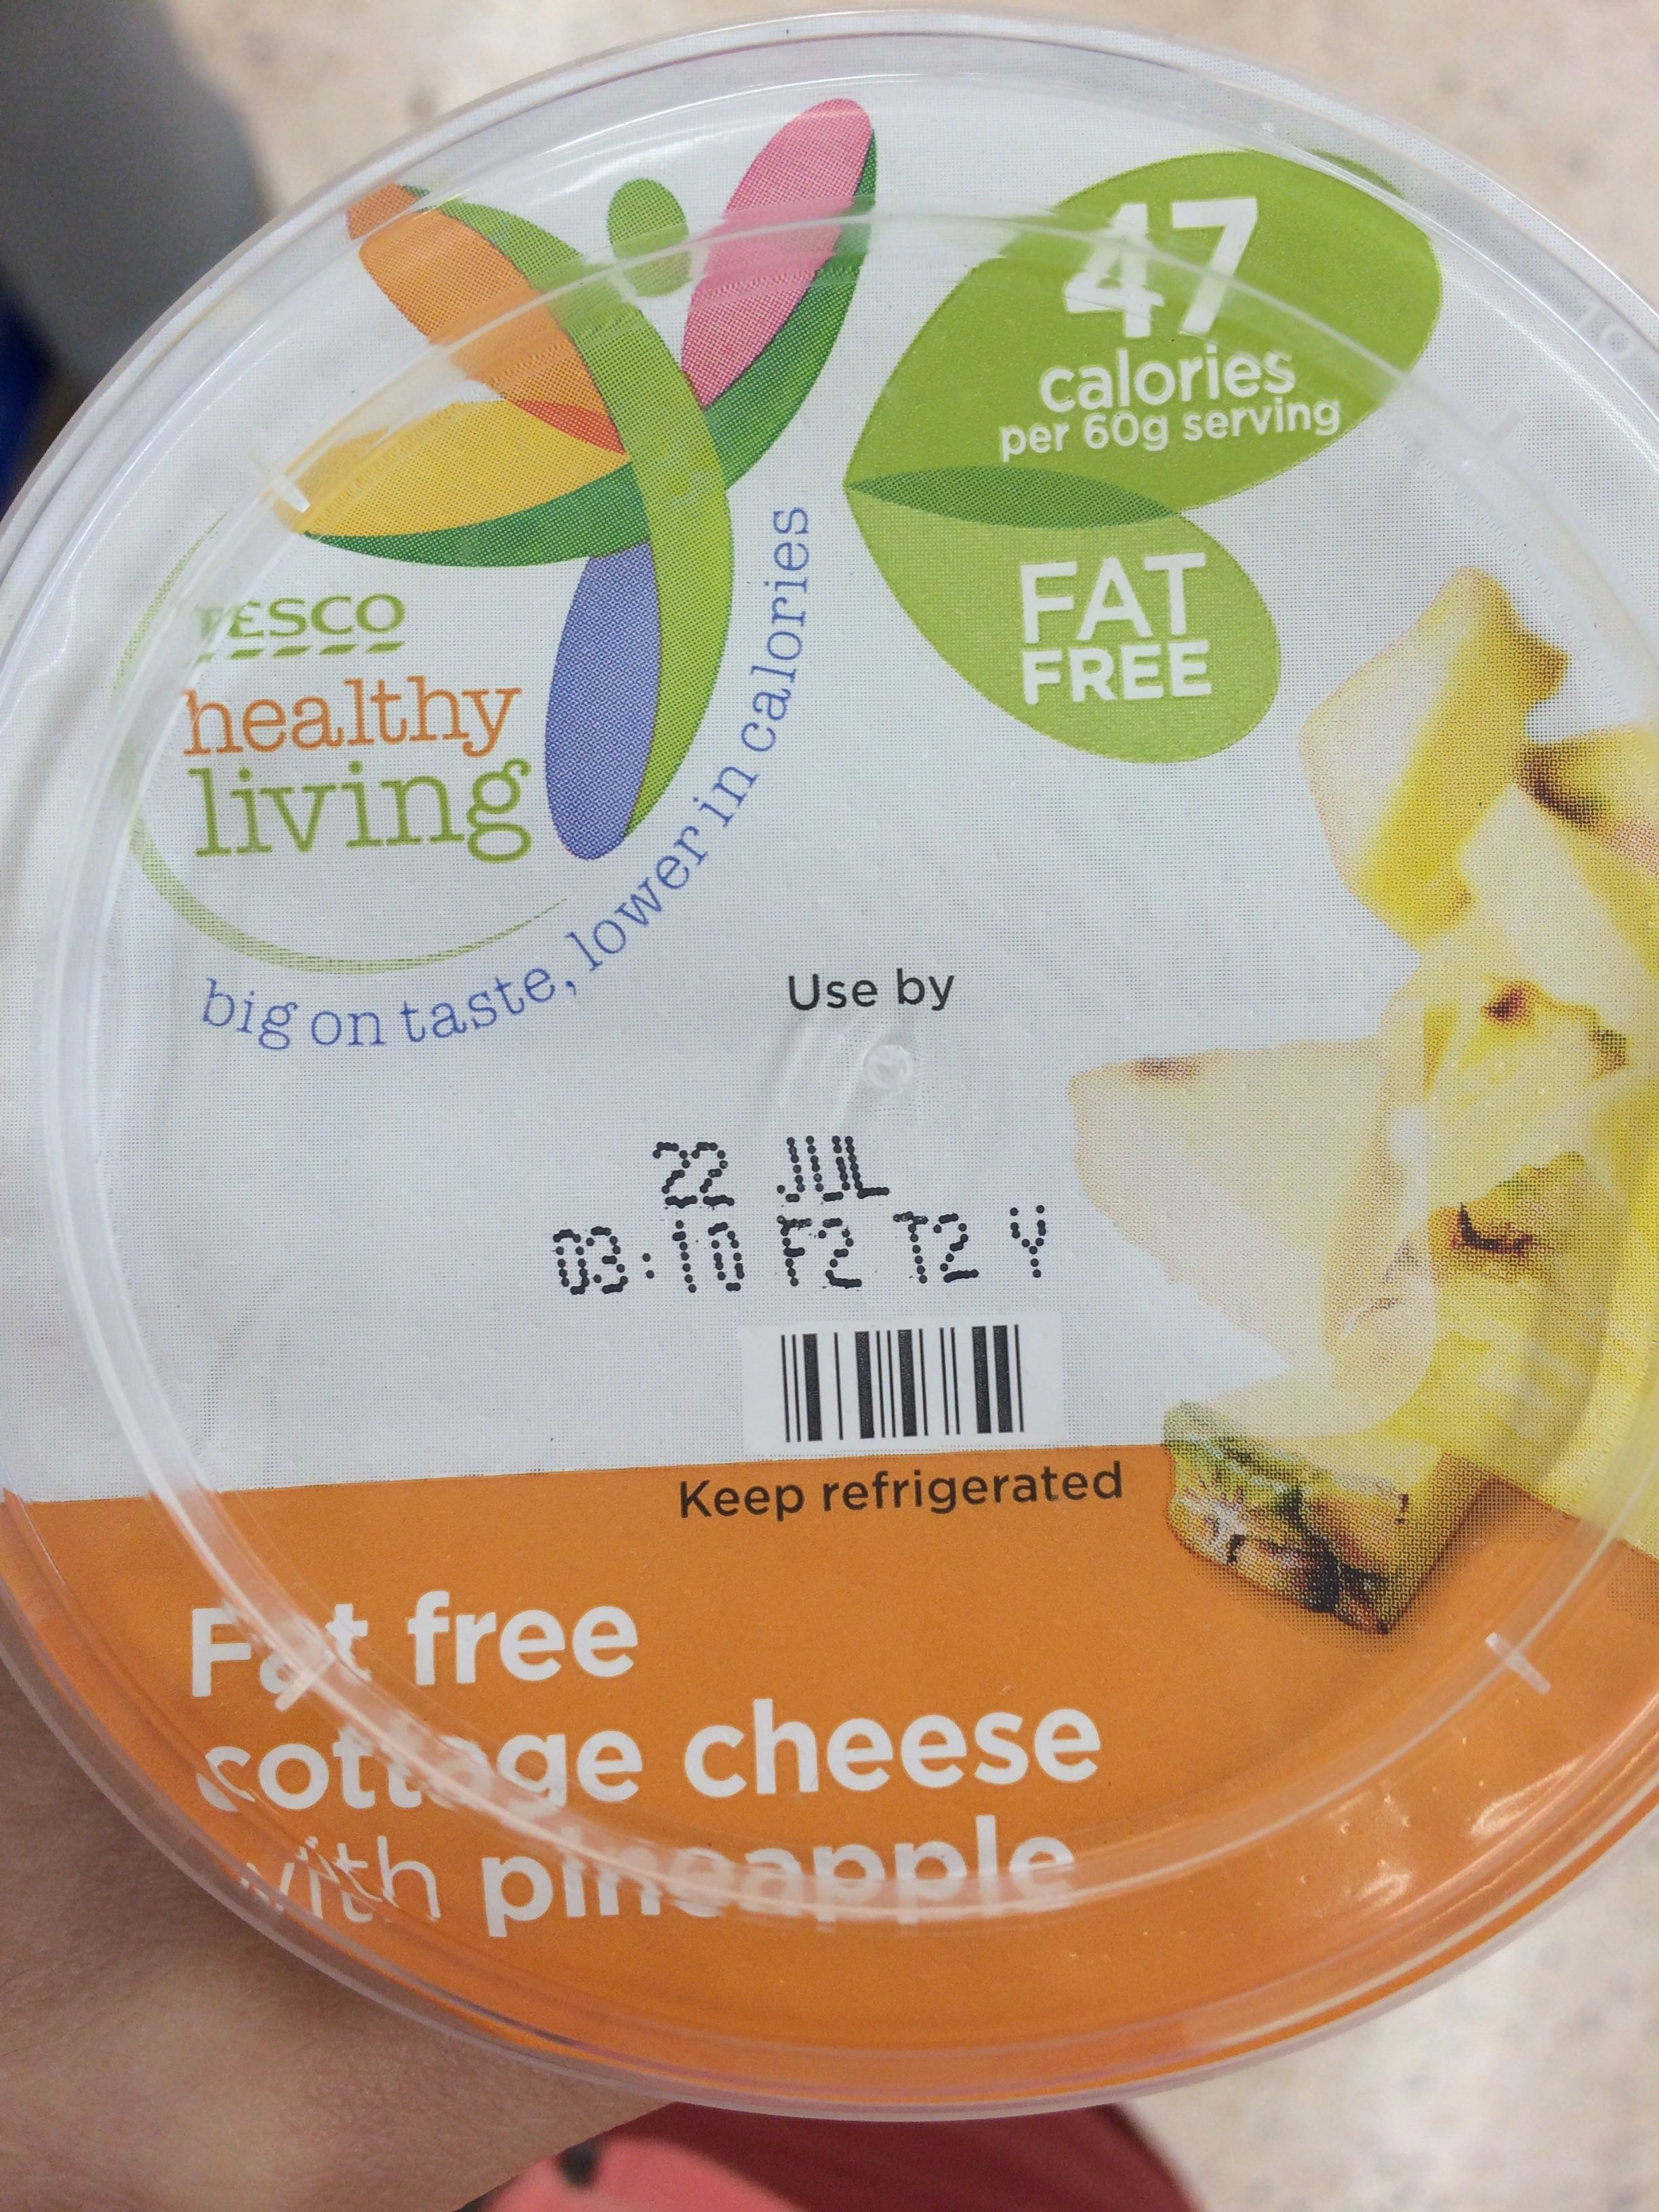 Fat Free Cottage Cheese With Pineapple